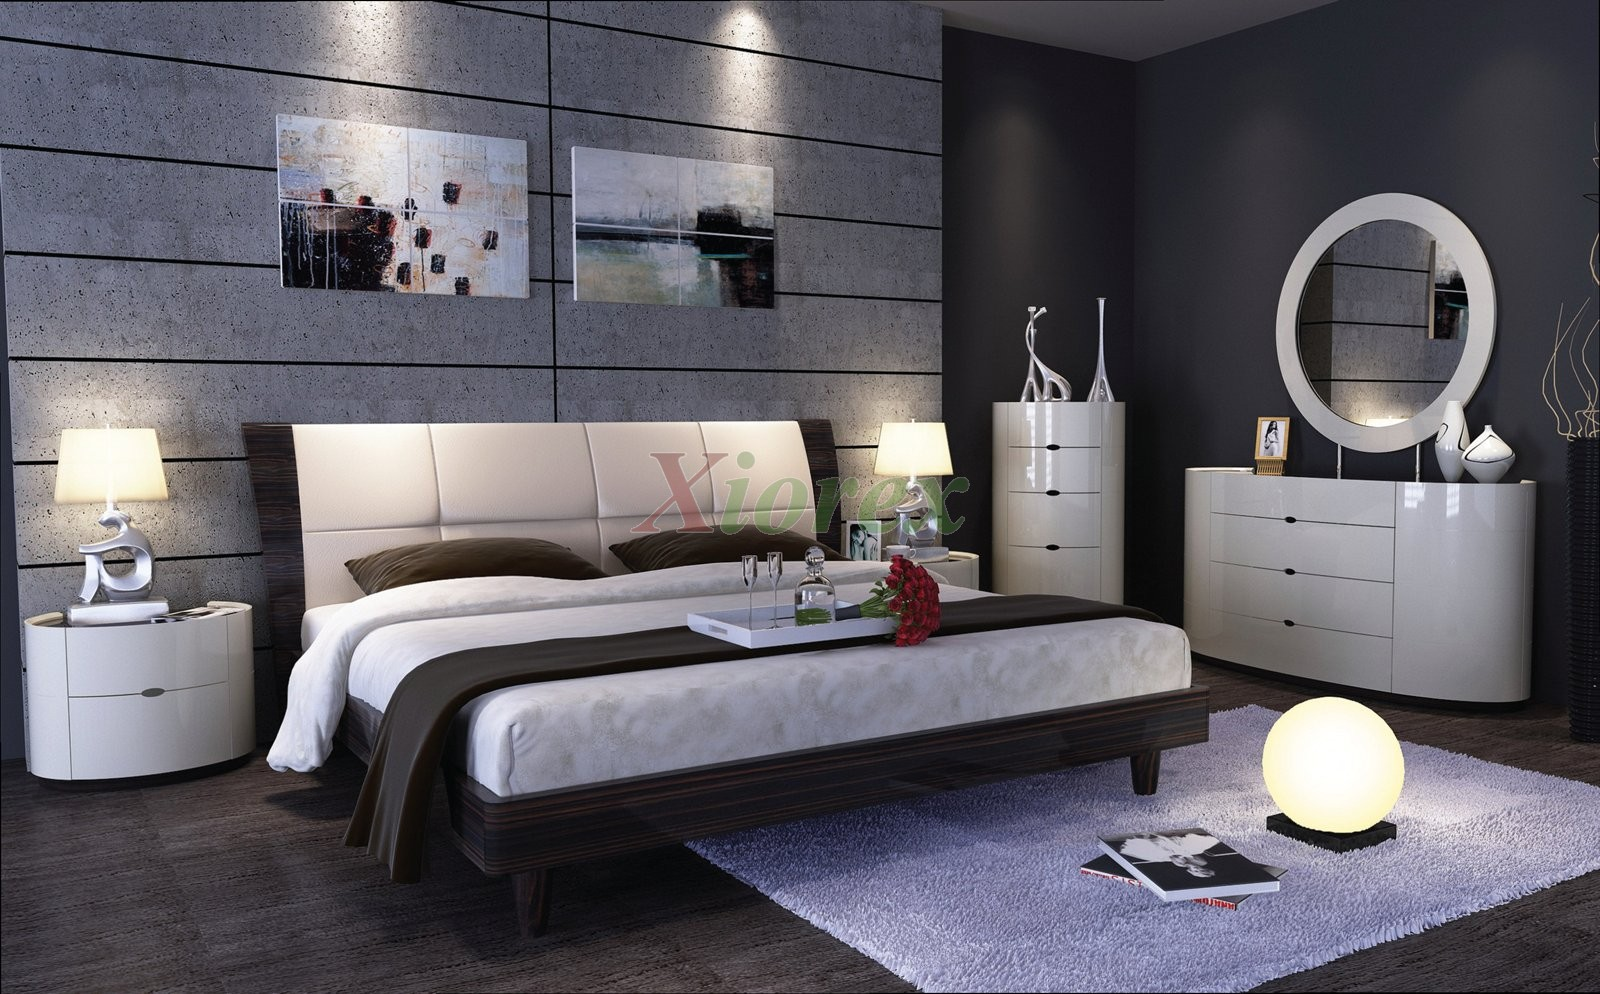 Hydra modern bed sets toronto ottawa calgary vancouver bc for B furniture toronto